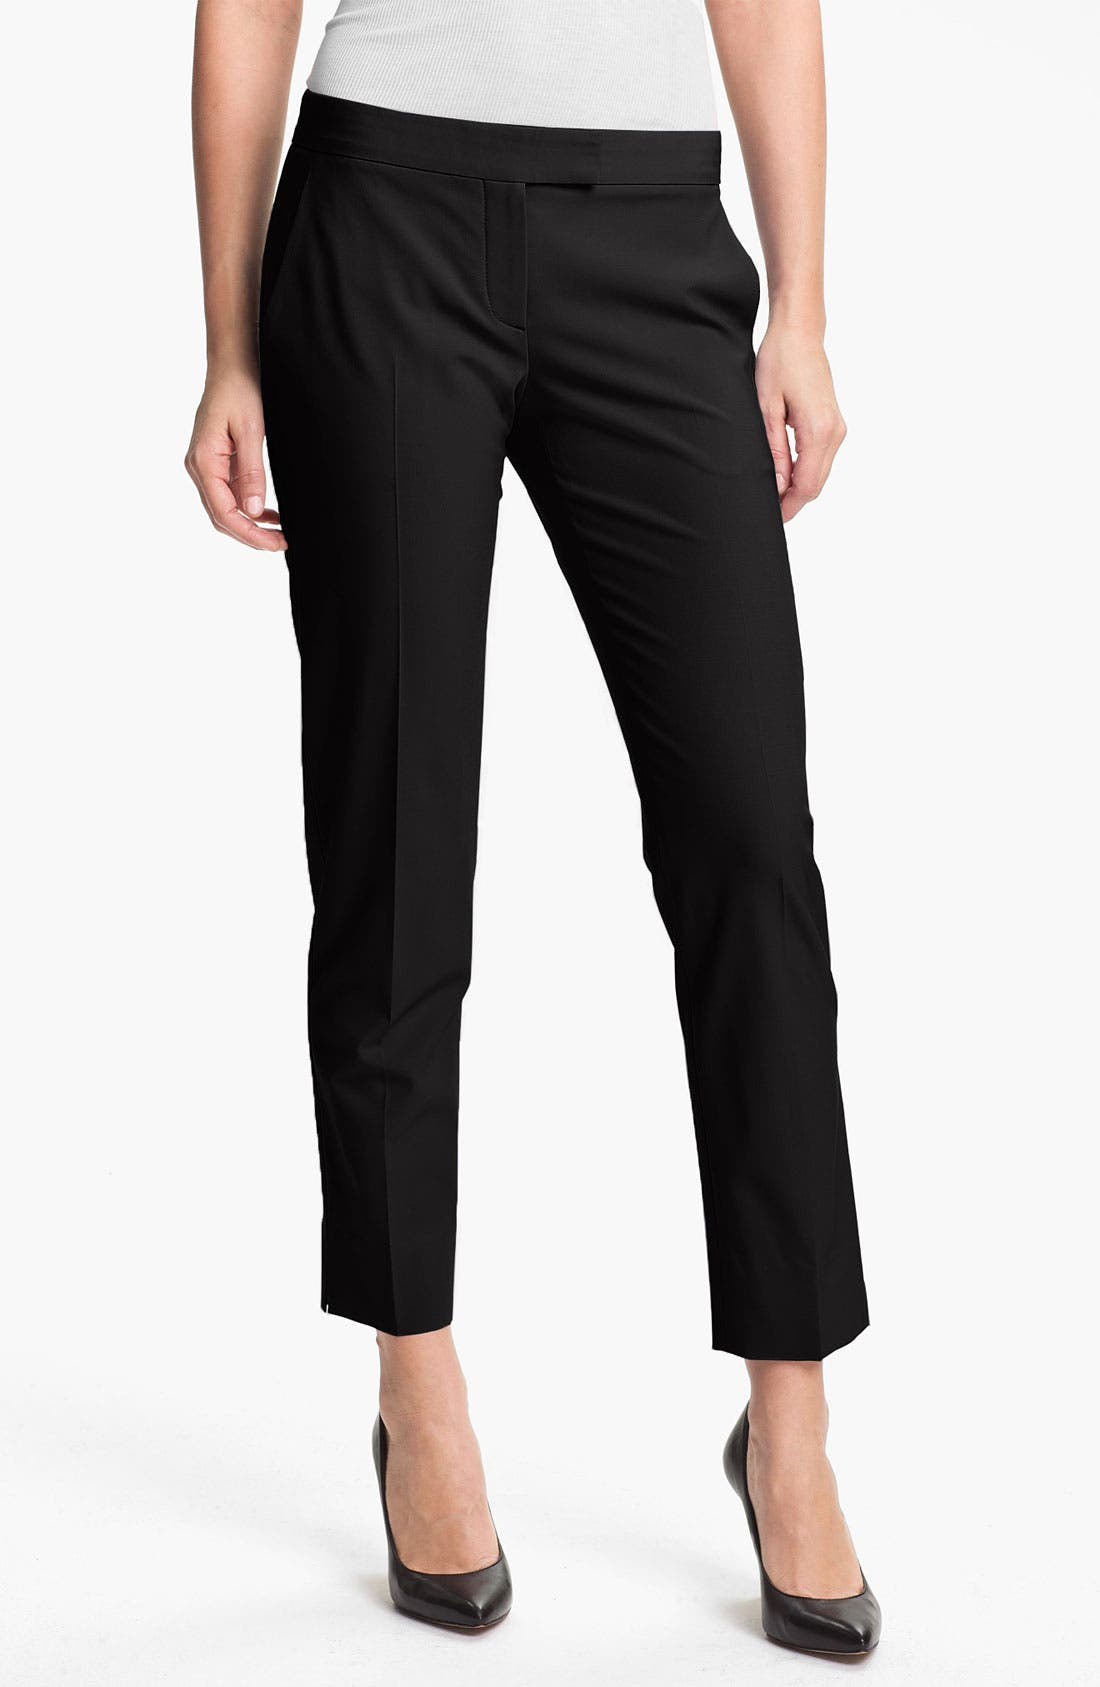 'Ibbey' Crop Trousers,                             Main thumbnail 1, color,                             001